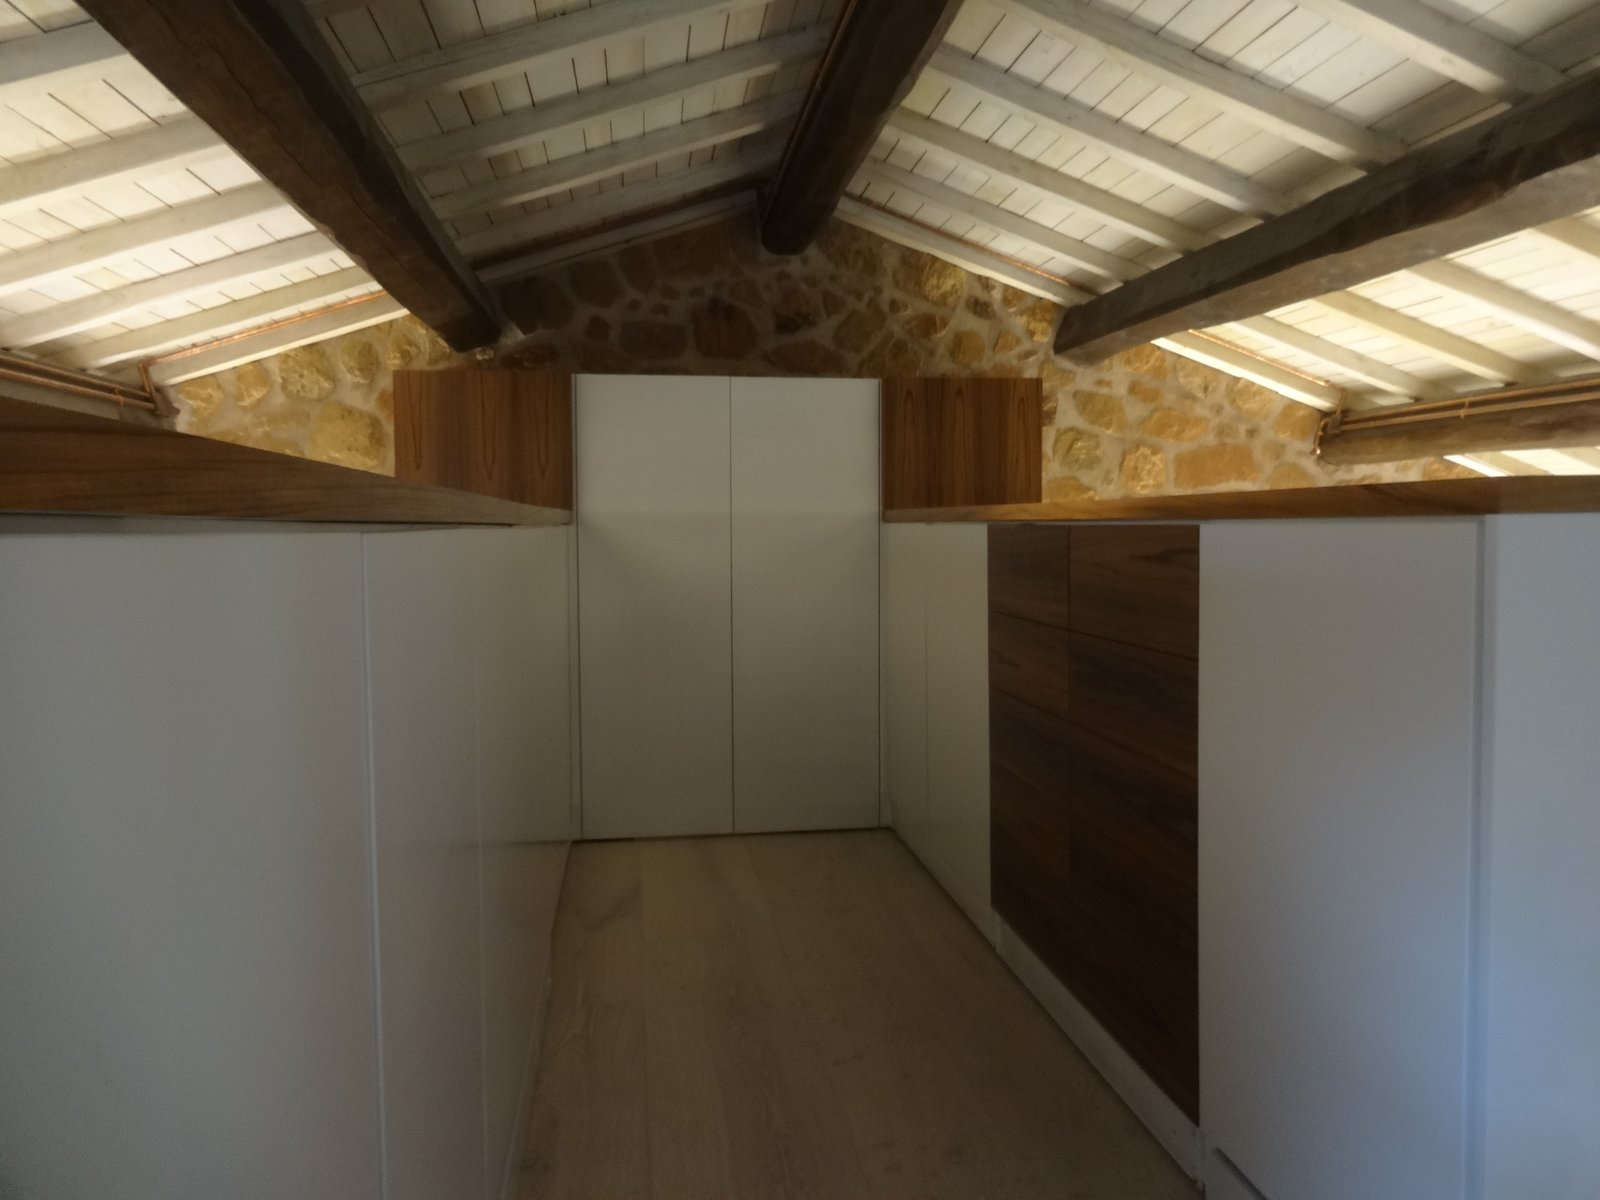 Storage Room, Closet Storage Type, and Cabinet Storage Type  CAFElab architects turns an old farmhouse into a luxury residence in Rome